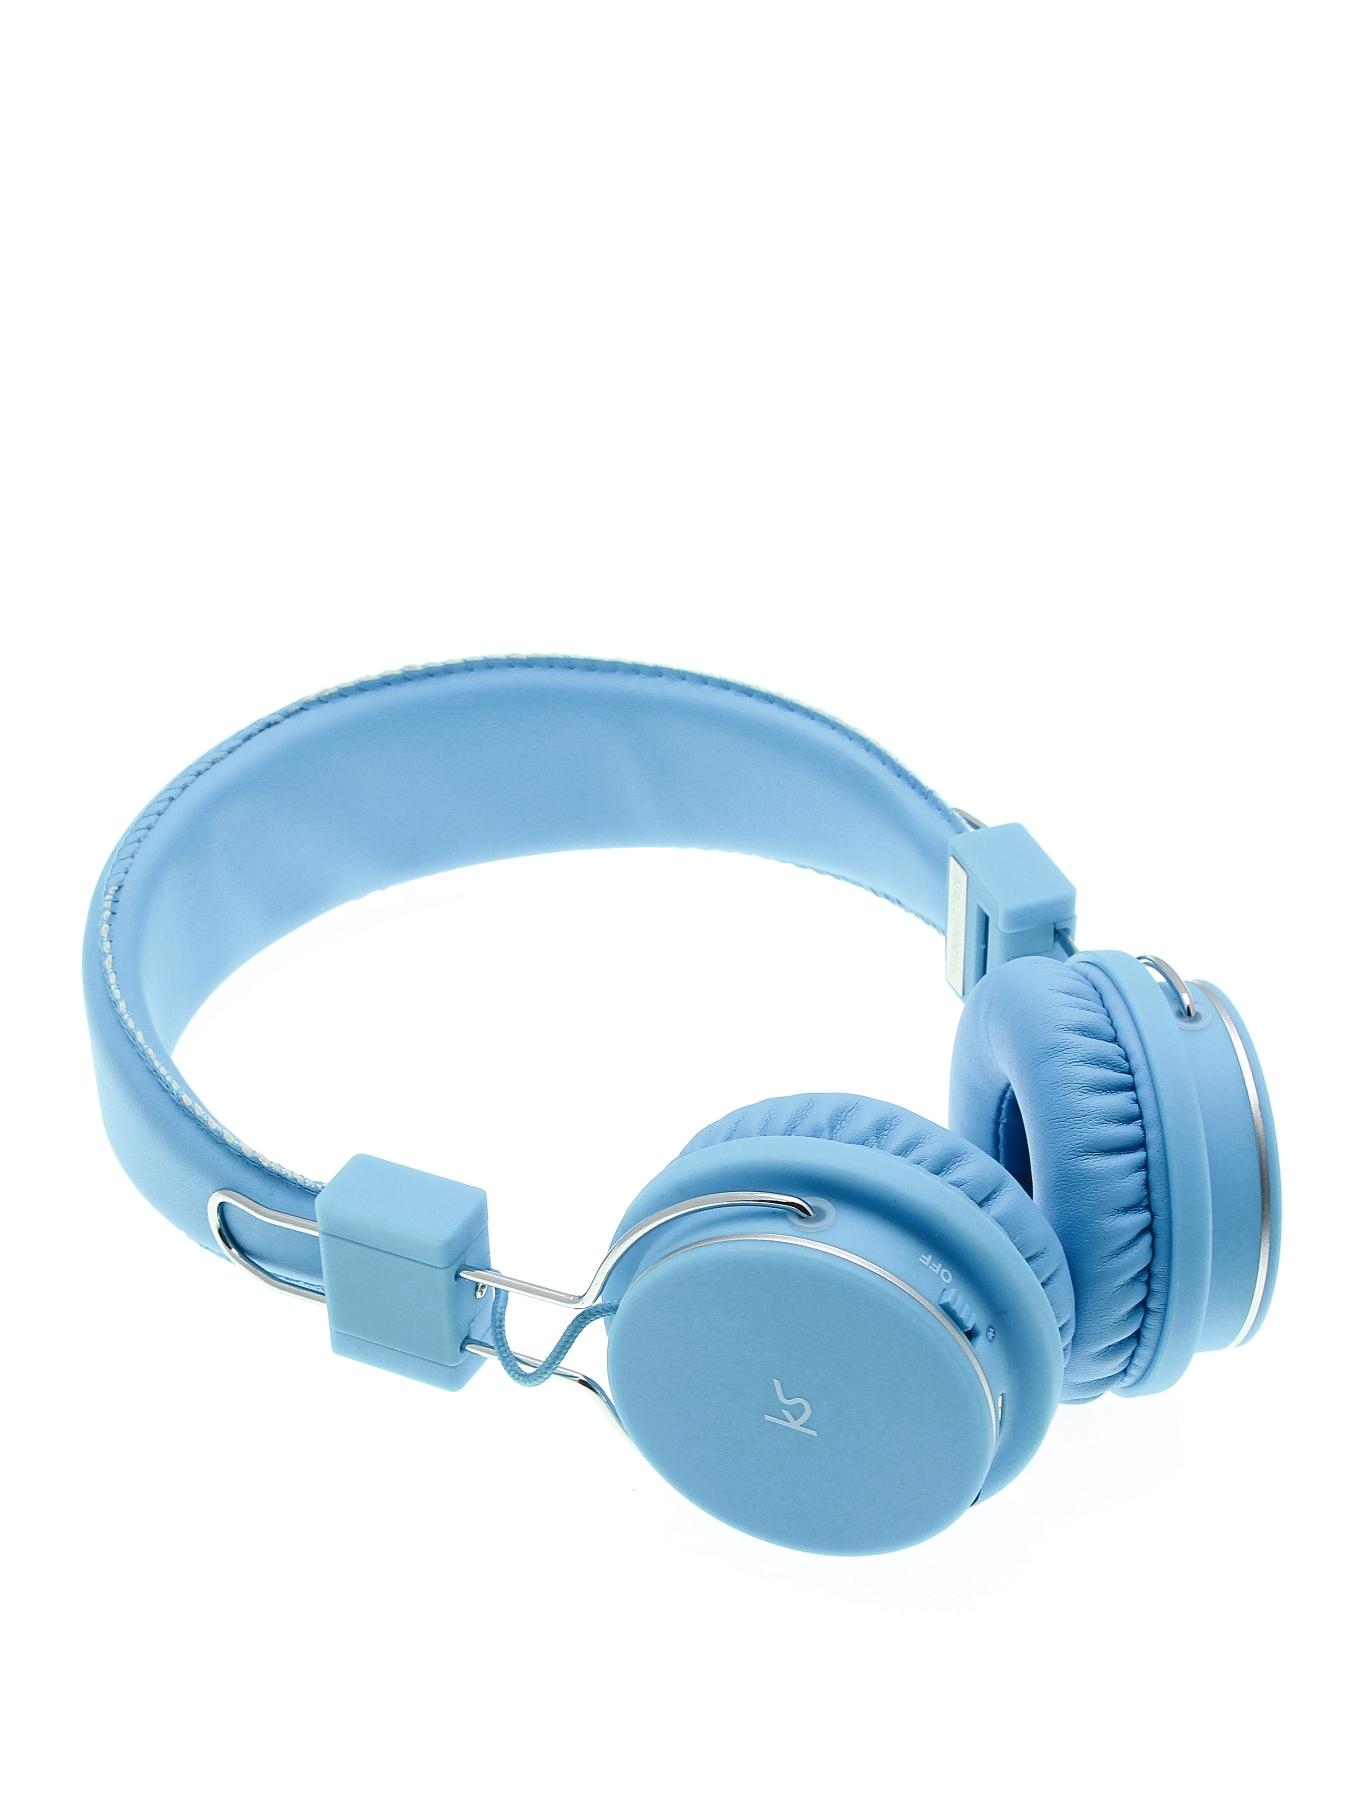 Manhattan Bluetooth Wireless Over Ear Headphones With Mic - Blue